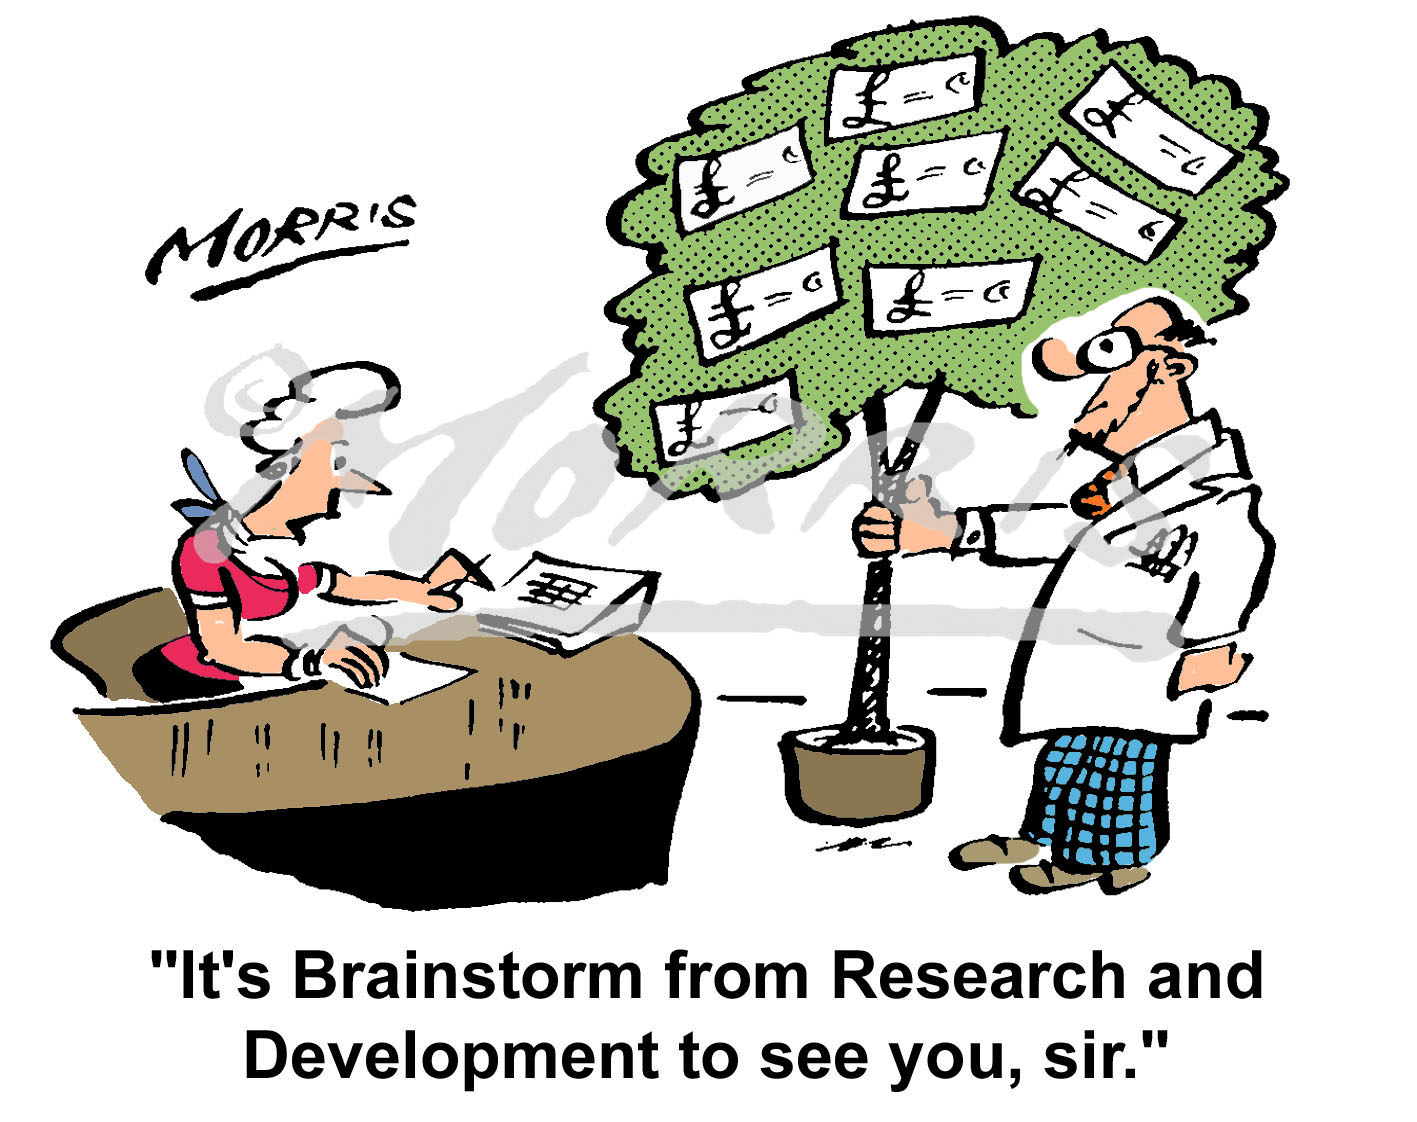 Research and Development cartoon – Ref: 2209col